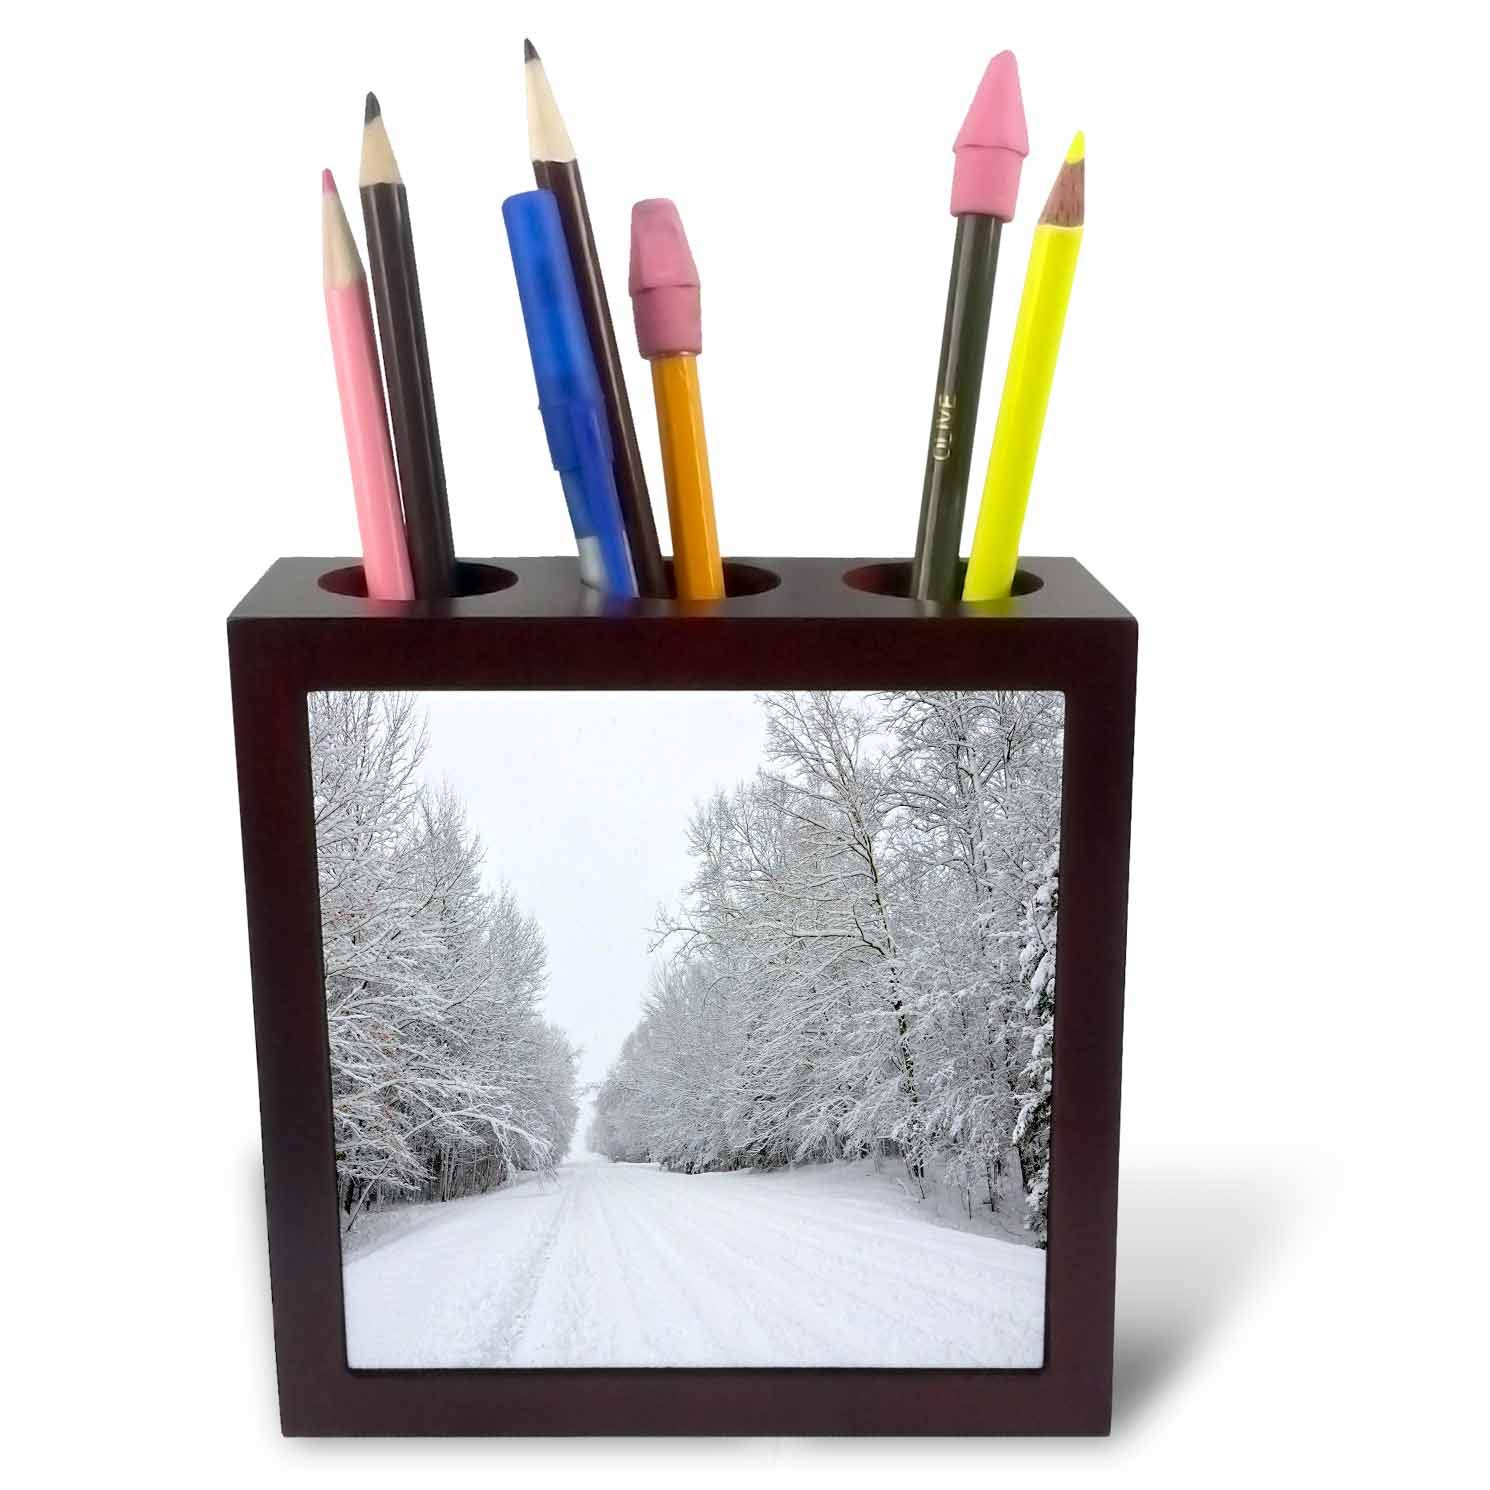 3dRose Dreamscapes by Leslie - Scenery - Country Road After a Snow Storm - 5 inch Tile Pen Holder (ph_292250_1)